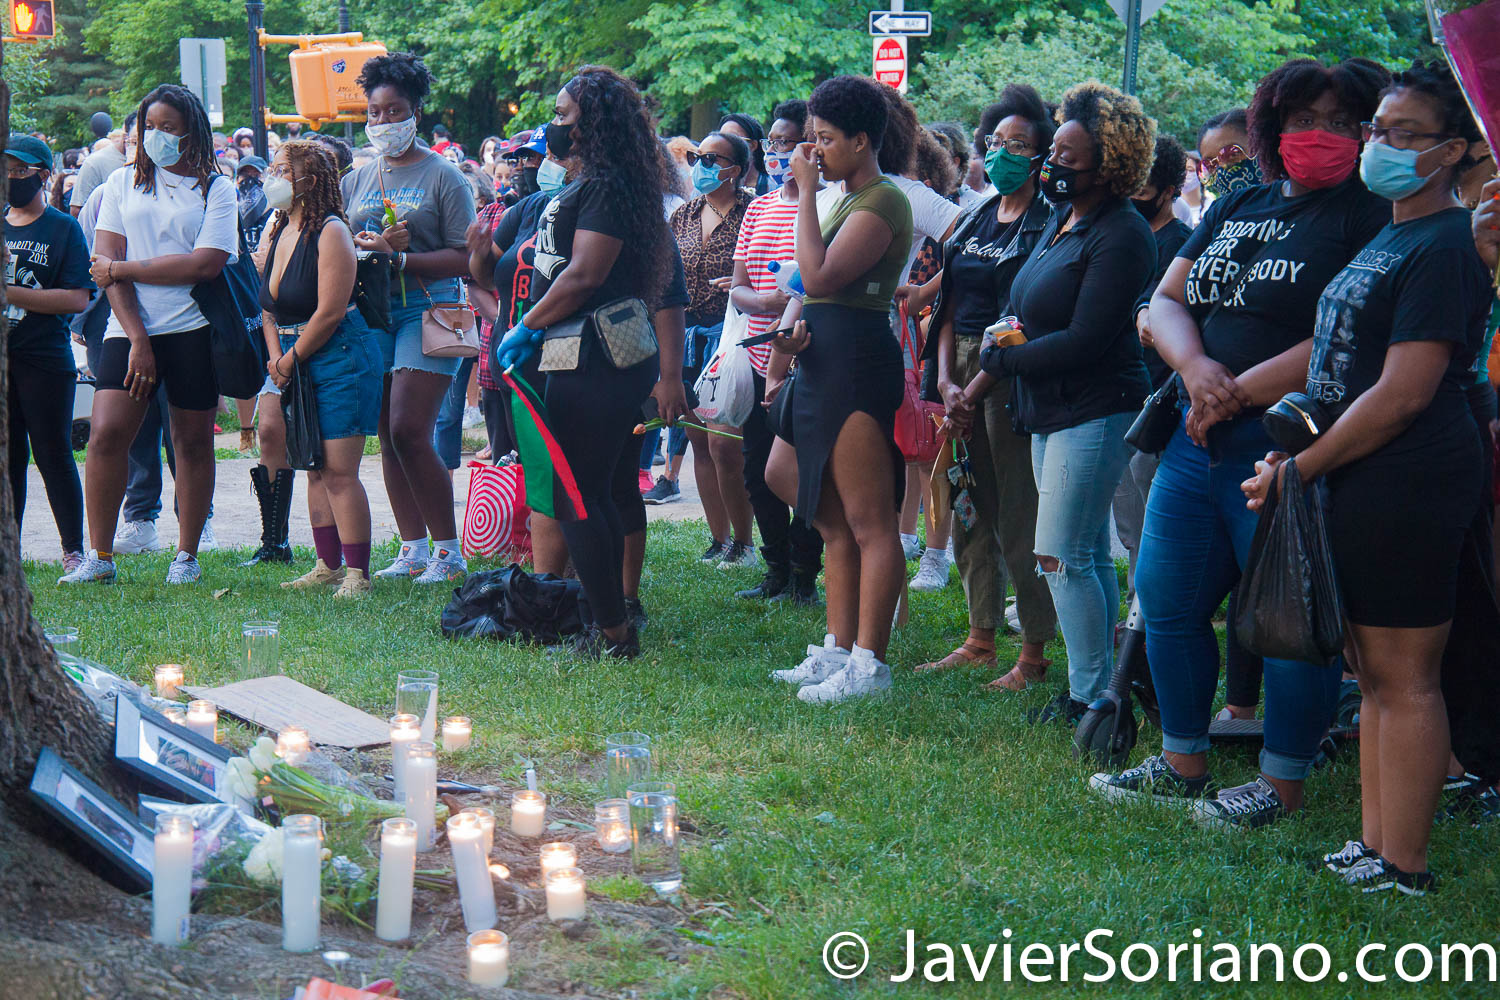 Friday, June 19, 2020. New York City – People celebrate Juneteenth in Prospect Park, Brooklyn. They had a vigil for women kill by police officers and by civilians. Protestors also demand justice for people killed by police officers in the country and they want NYC Council members and NYC Mayor to defund the NYPD by at least one billion and invest in low income communities. Photo by Javier Soriano/www.JavierSoriano.com